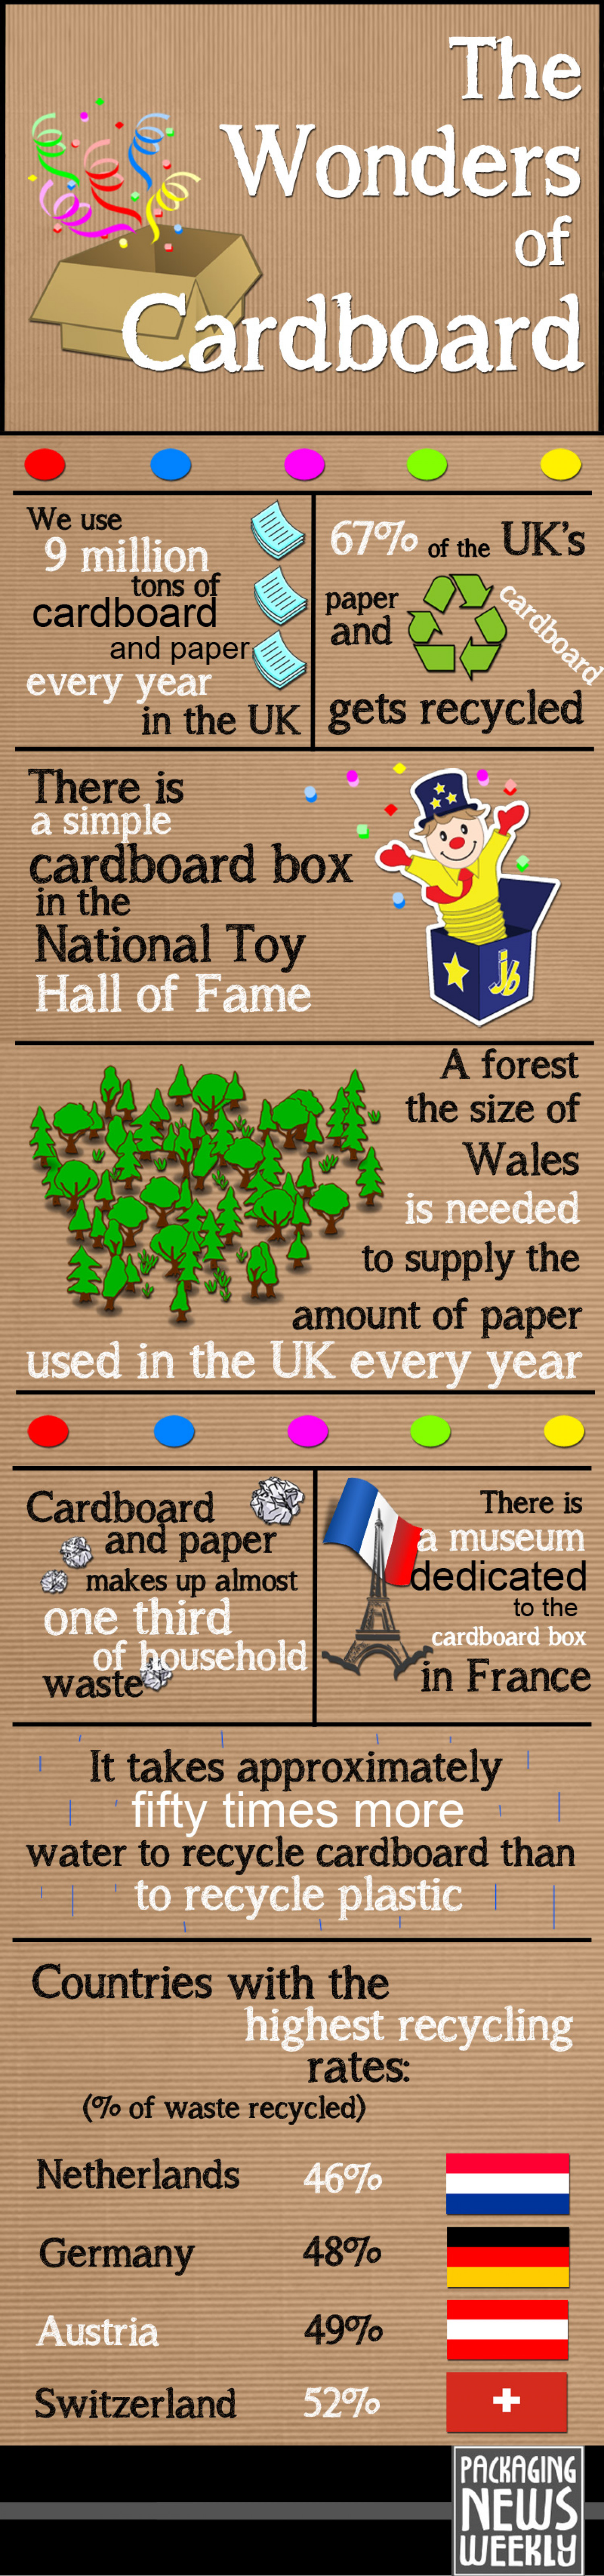 The Wonders of Cardboard Infographic